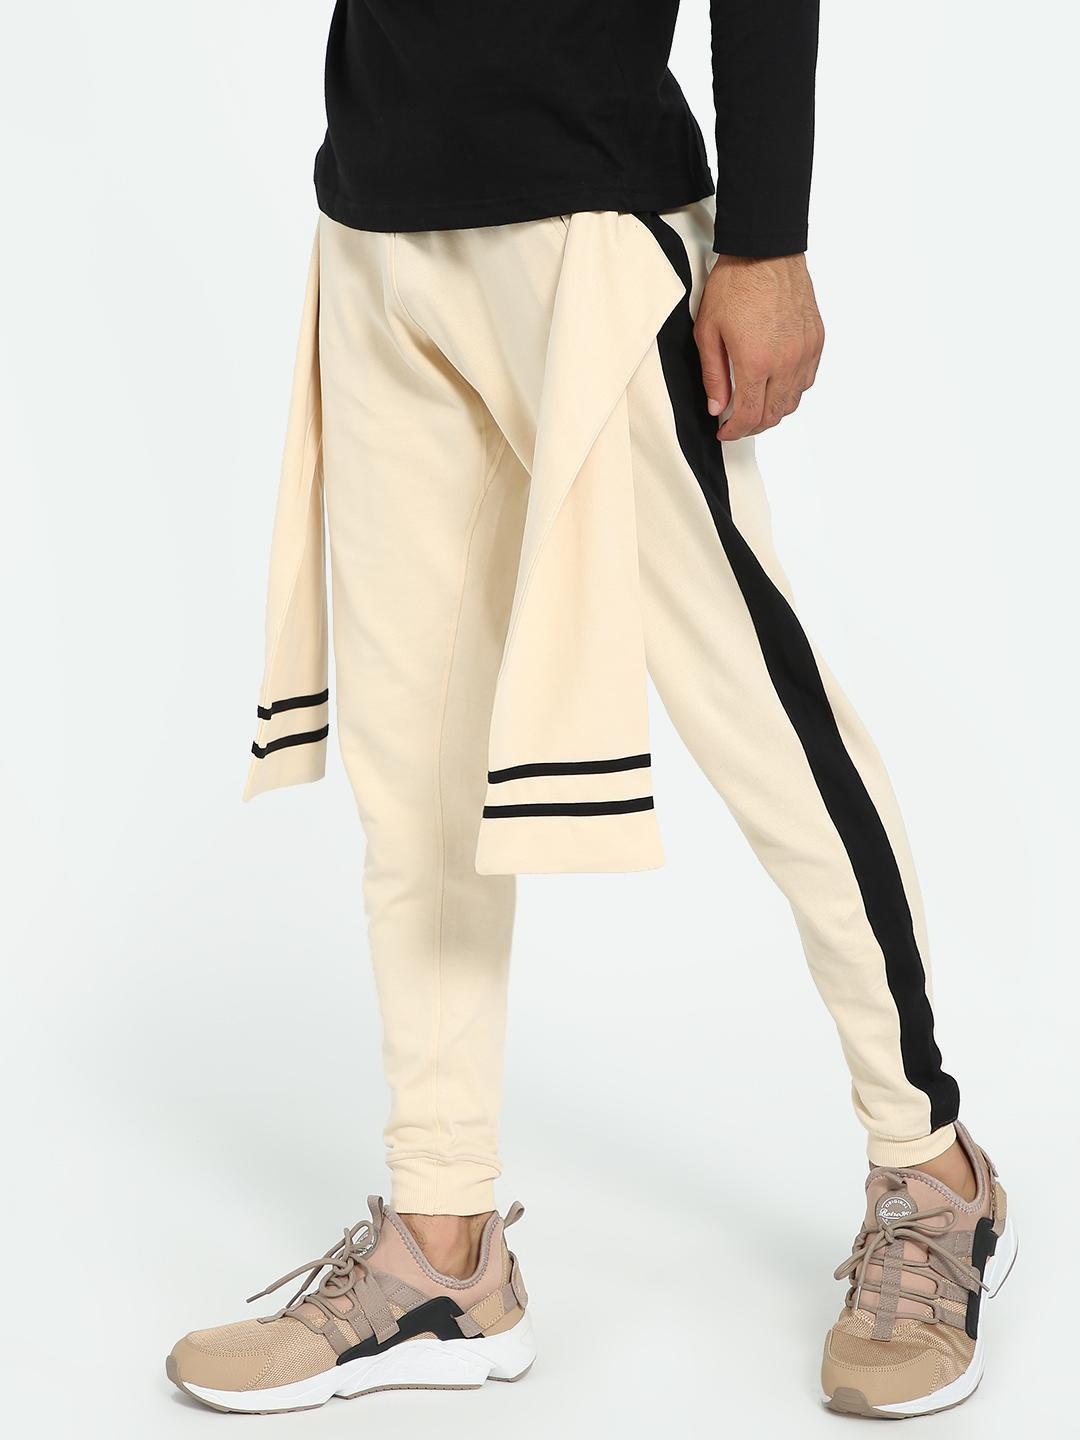 Kultprit Brown Tie-Knot Contrast Side Tape Joggers 1